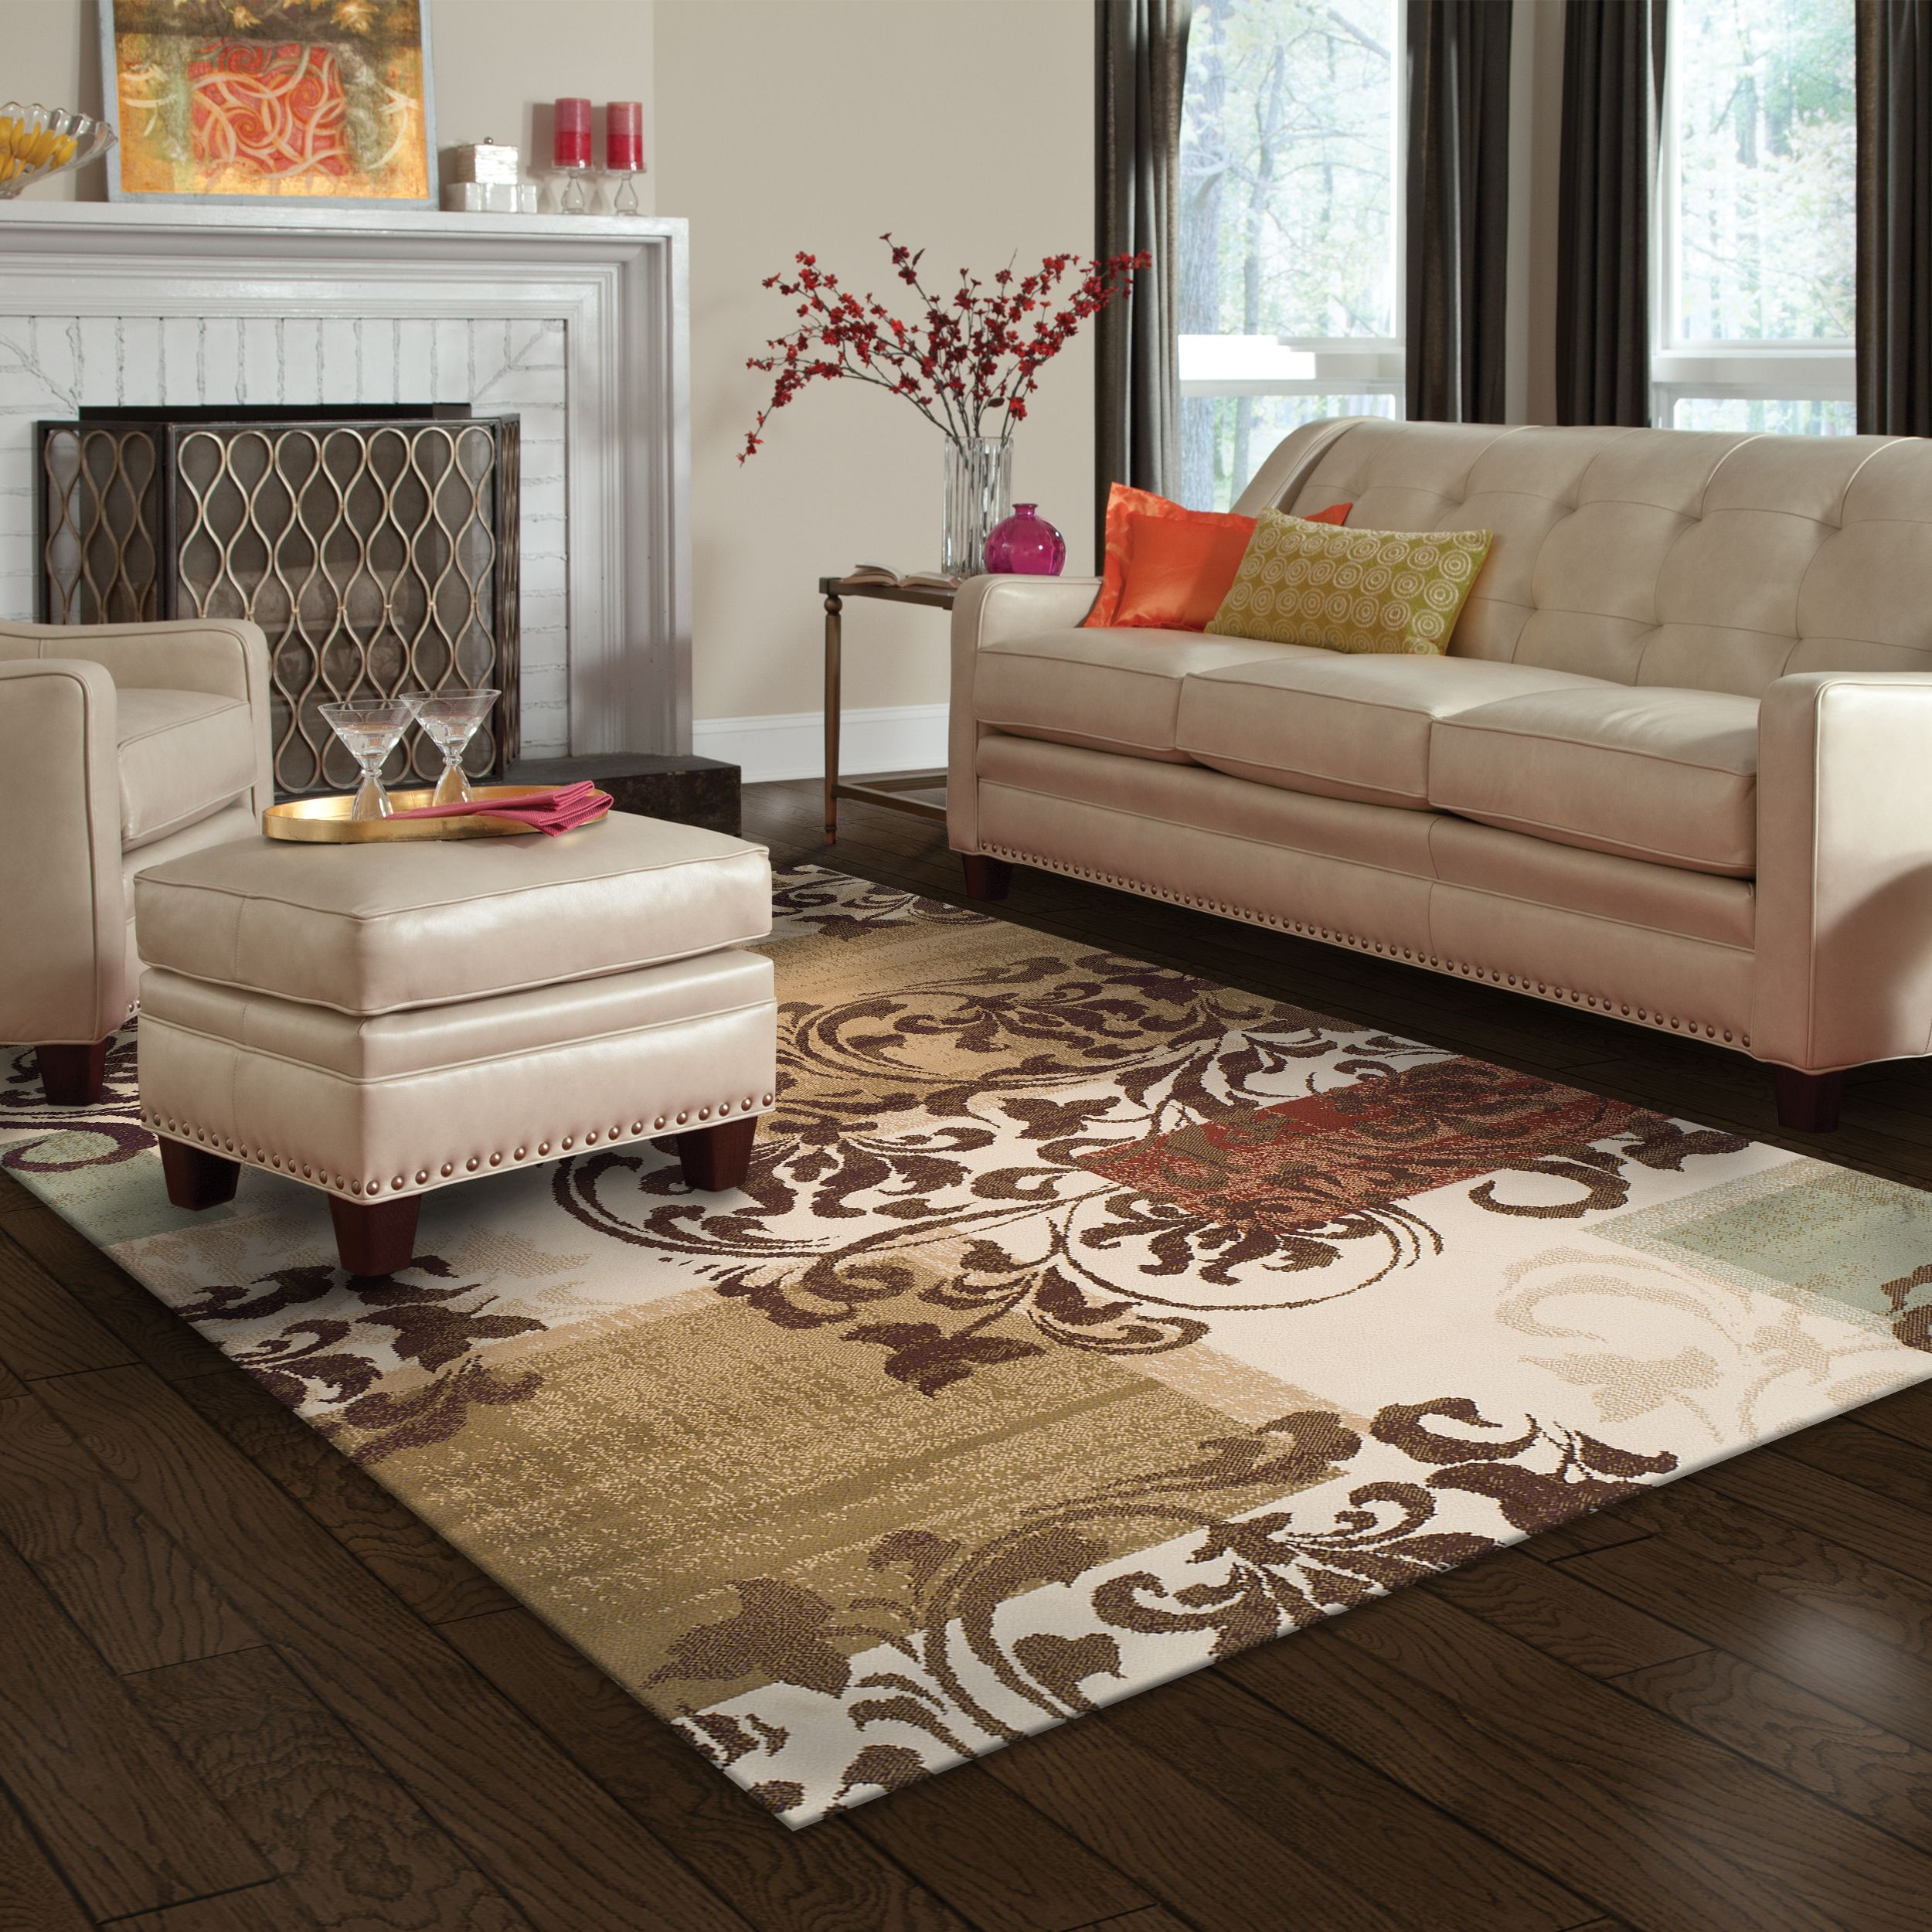 Superior Modern Storyville Scroll Collection with 10mm Pile and Jute Backing, Moisture Resistant and Anti-Static Indoor Area Rug